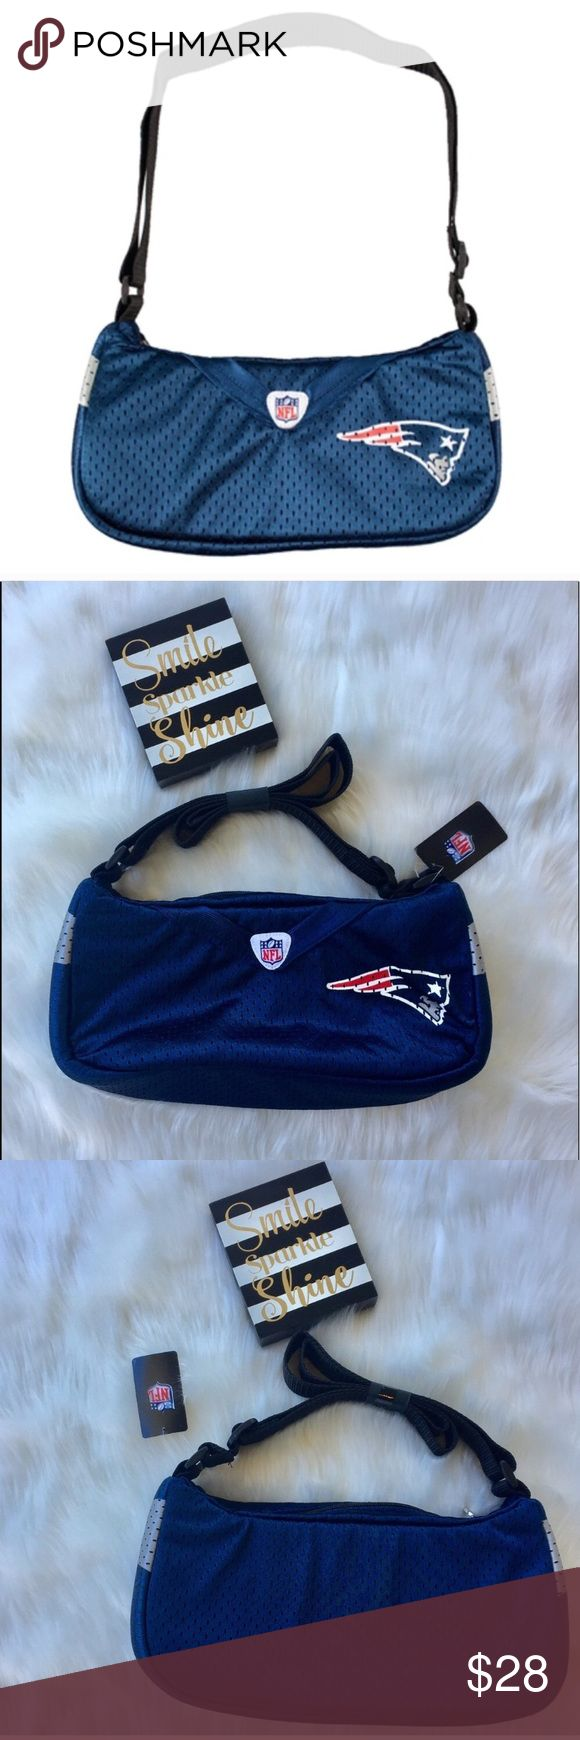 NWT NFL Patriots Jersey Purse NWT NFL Patriots Jersey Purse.  This is a cute fun and versatile bag that is great for game day.  Can be used as a shoulder or cross-body bag, super fun for game day or just to add to anyone's wardrobe goals!     🤔 Please ask all questions ✅Use Offer Button 🚭& 🐶😺🐠Free Home 🚫Trades/Offline Transactions 📦Bundle & Save Nike Bags